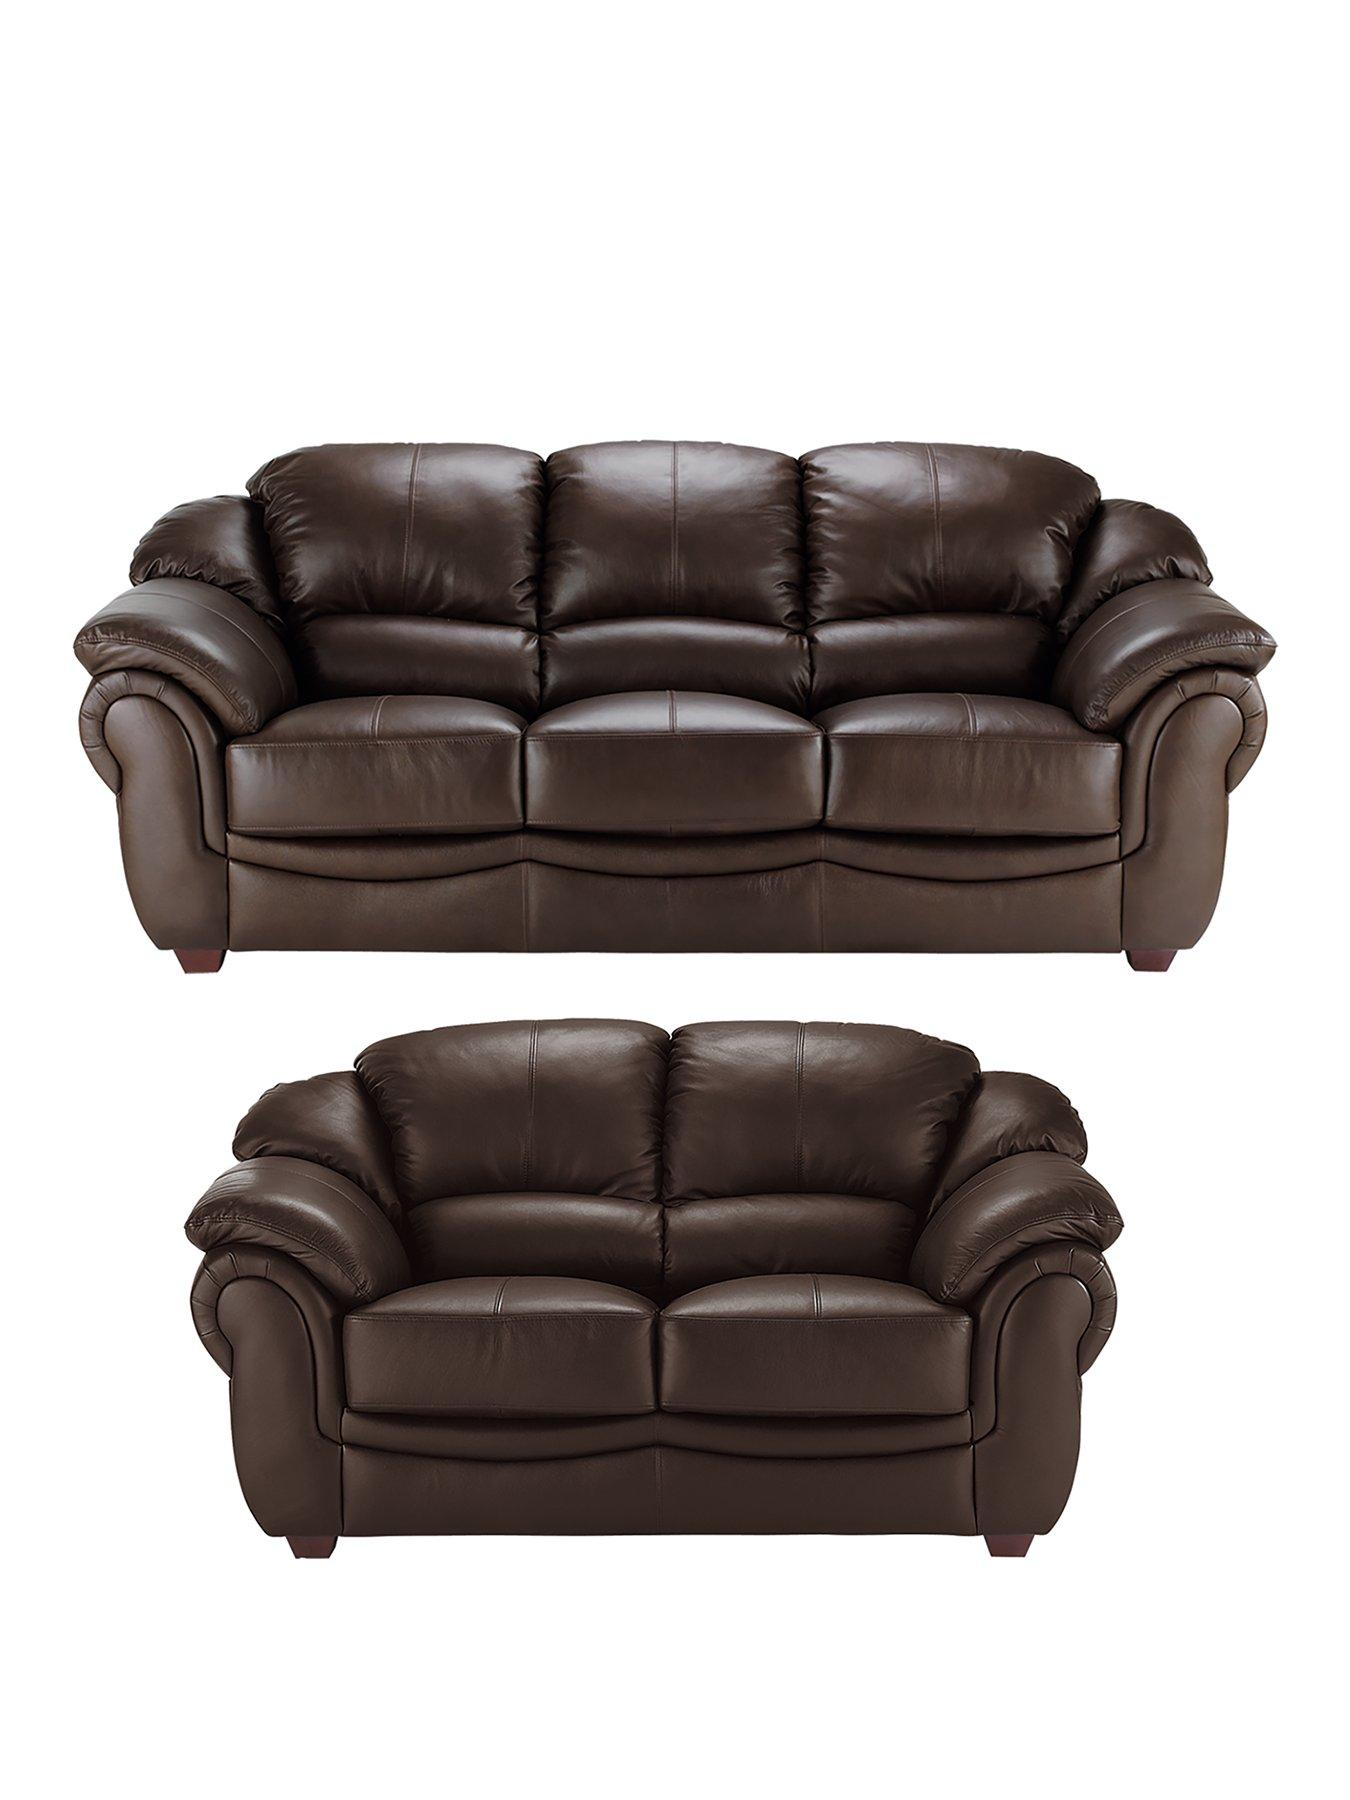 leather sofas cheap prices how to spray paint sofa napoli 3 seater plus 2 set buy and save very co uk